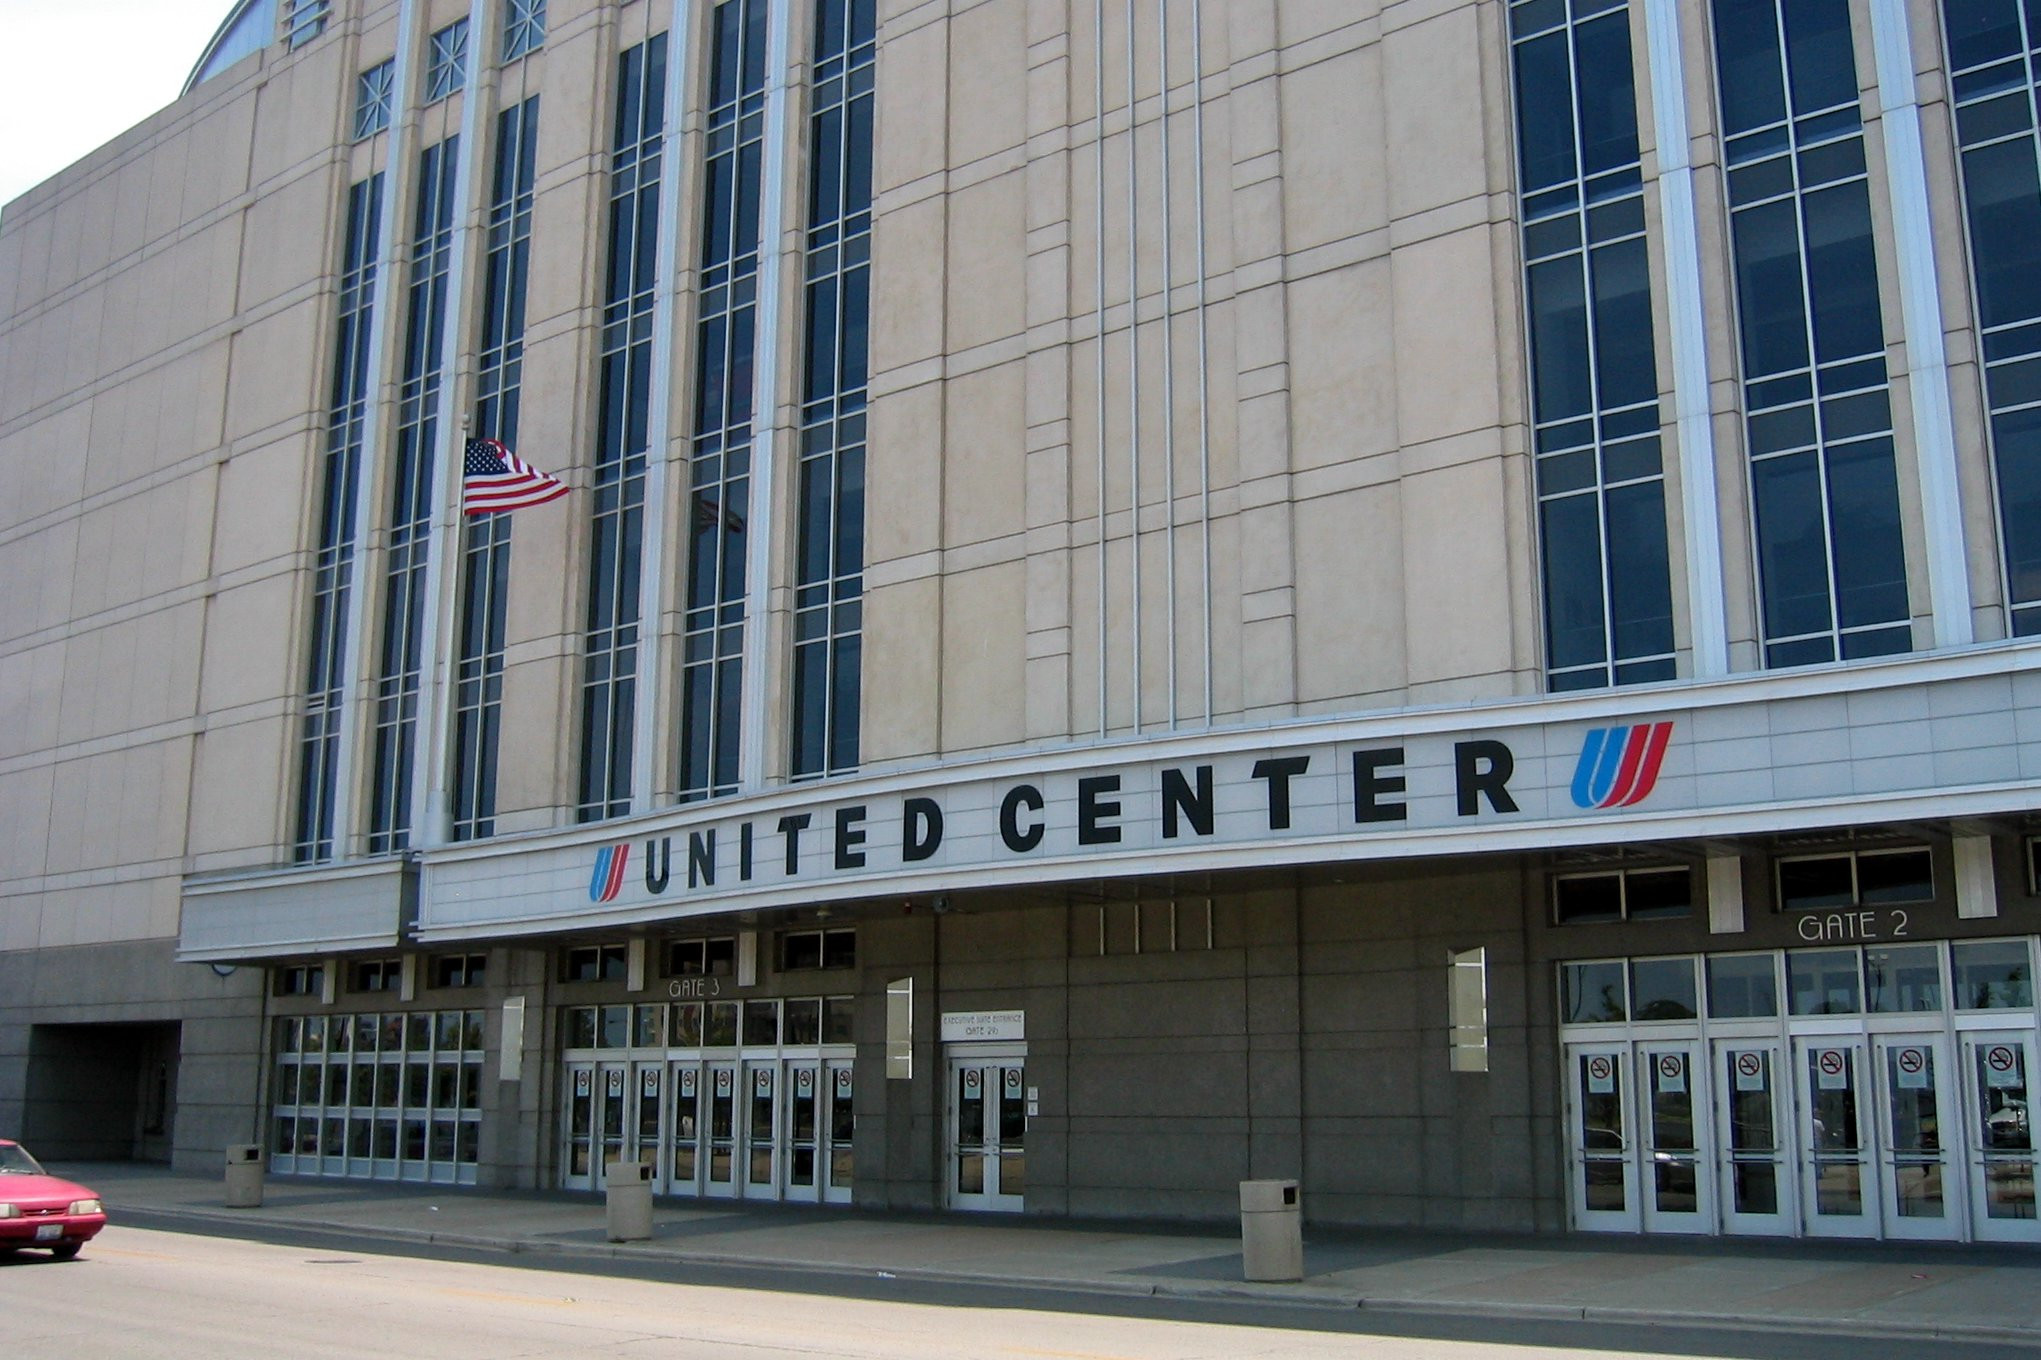 The United Center in Chicago will host the Laver Cup in 2018 ©Wikipedia